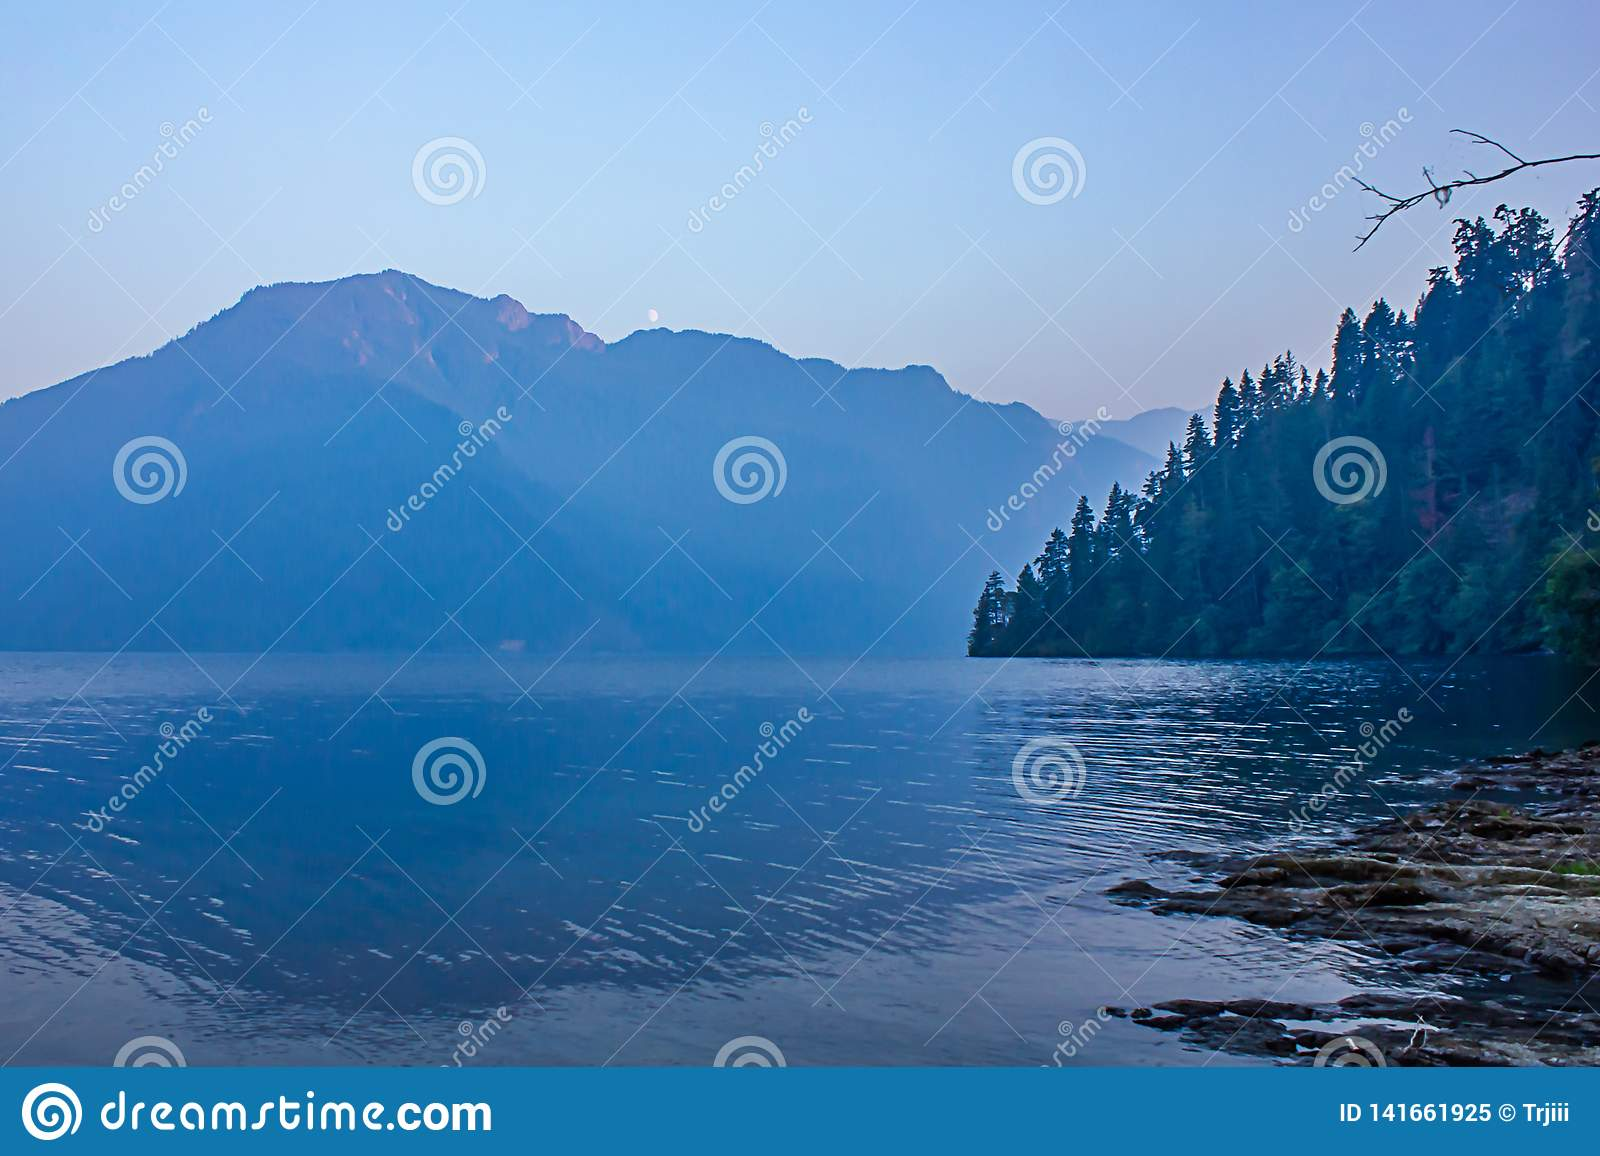 Deep blue lake at dusk in summer with mountain